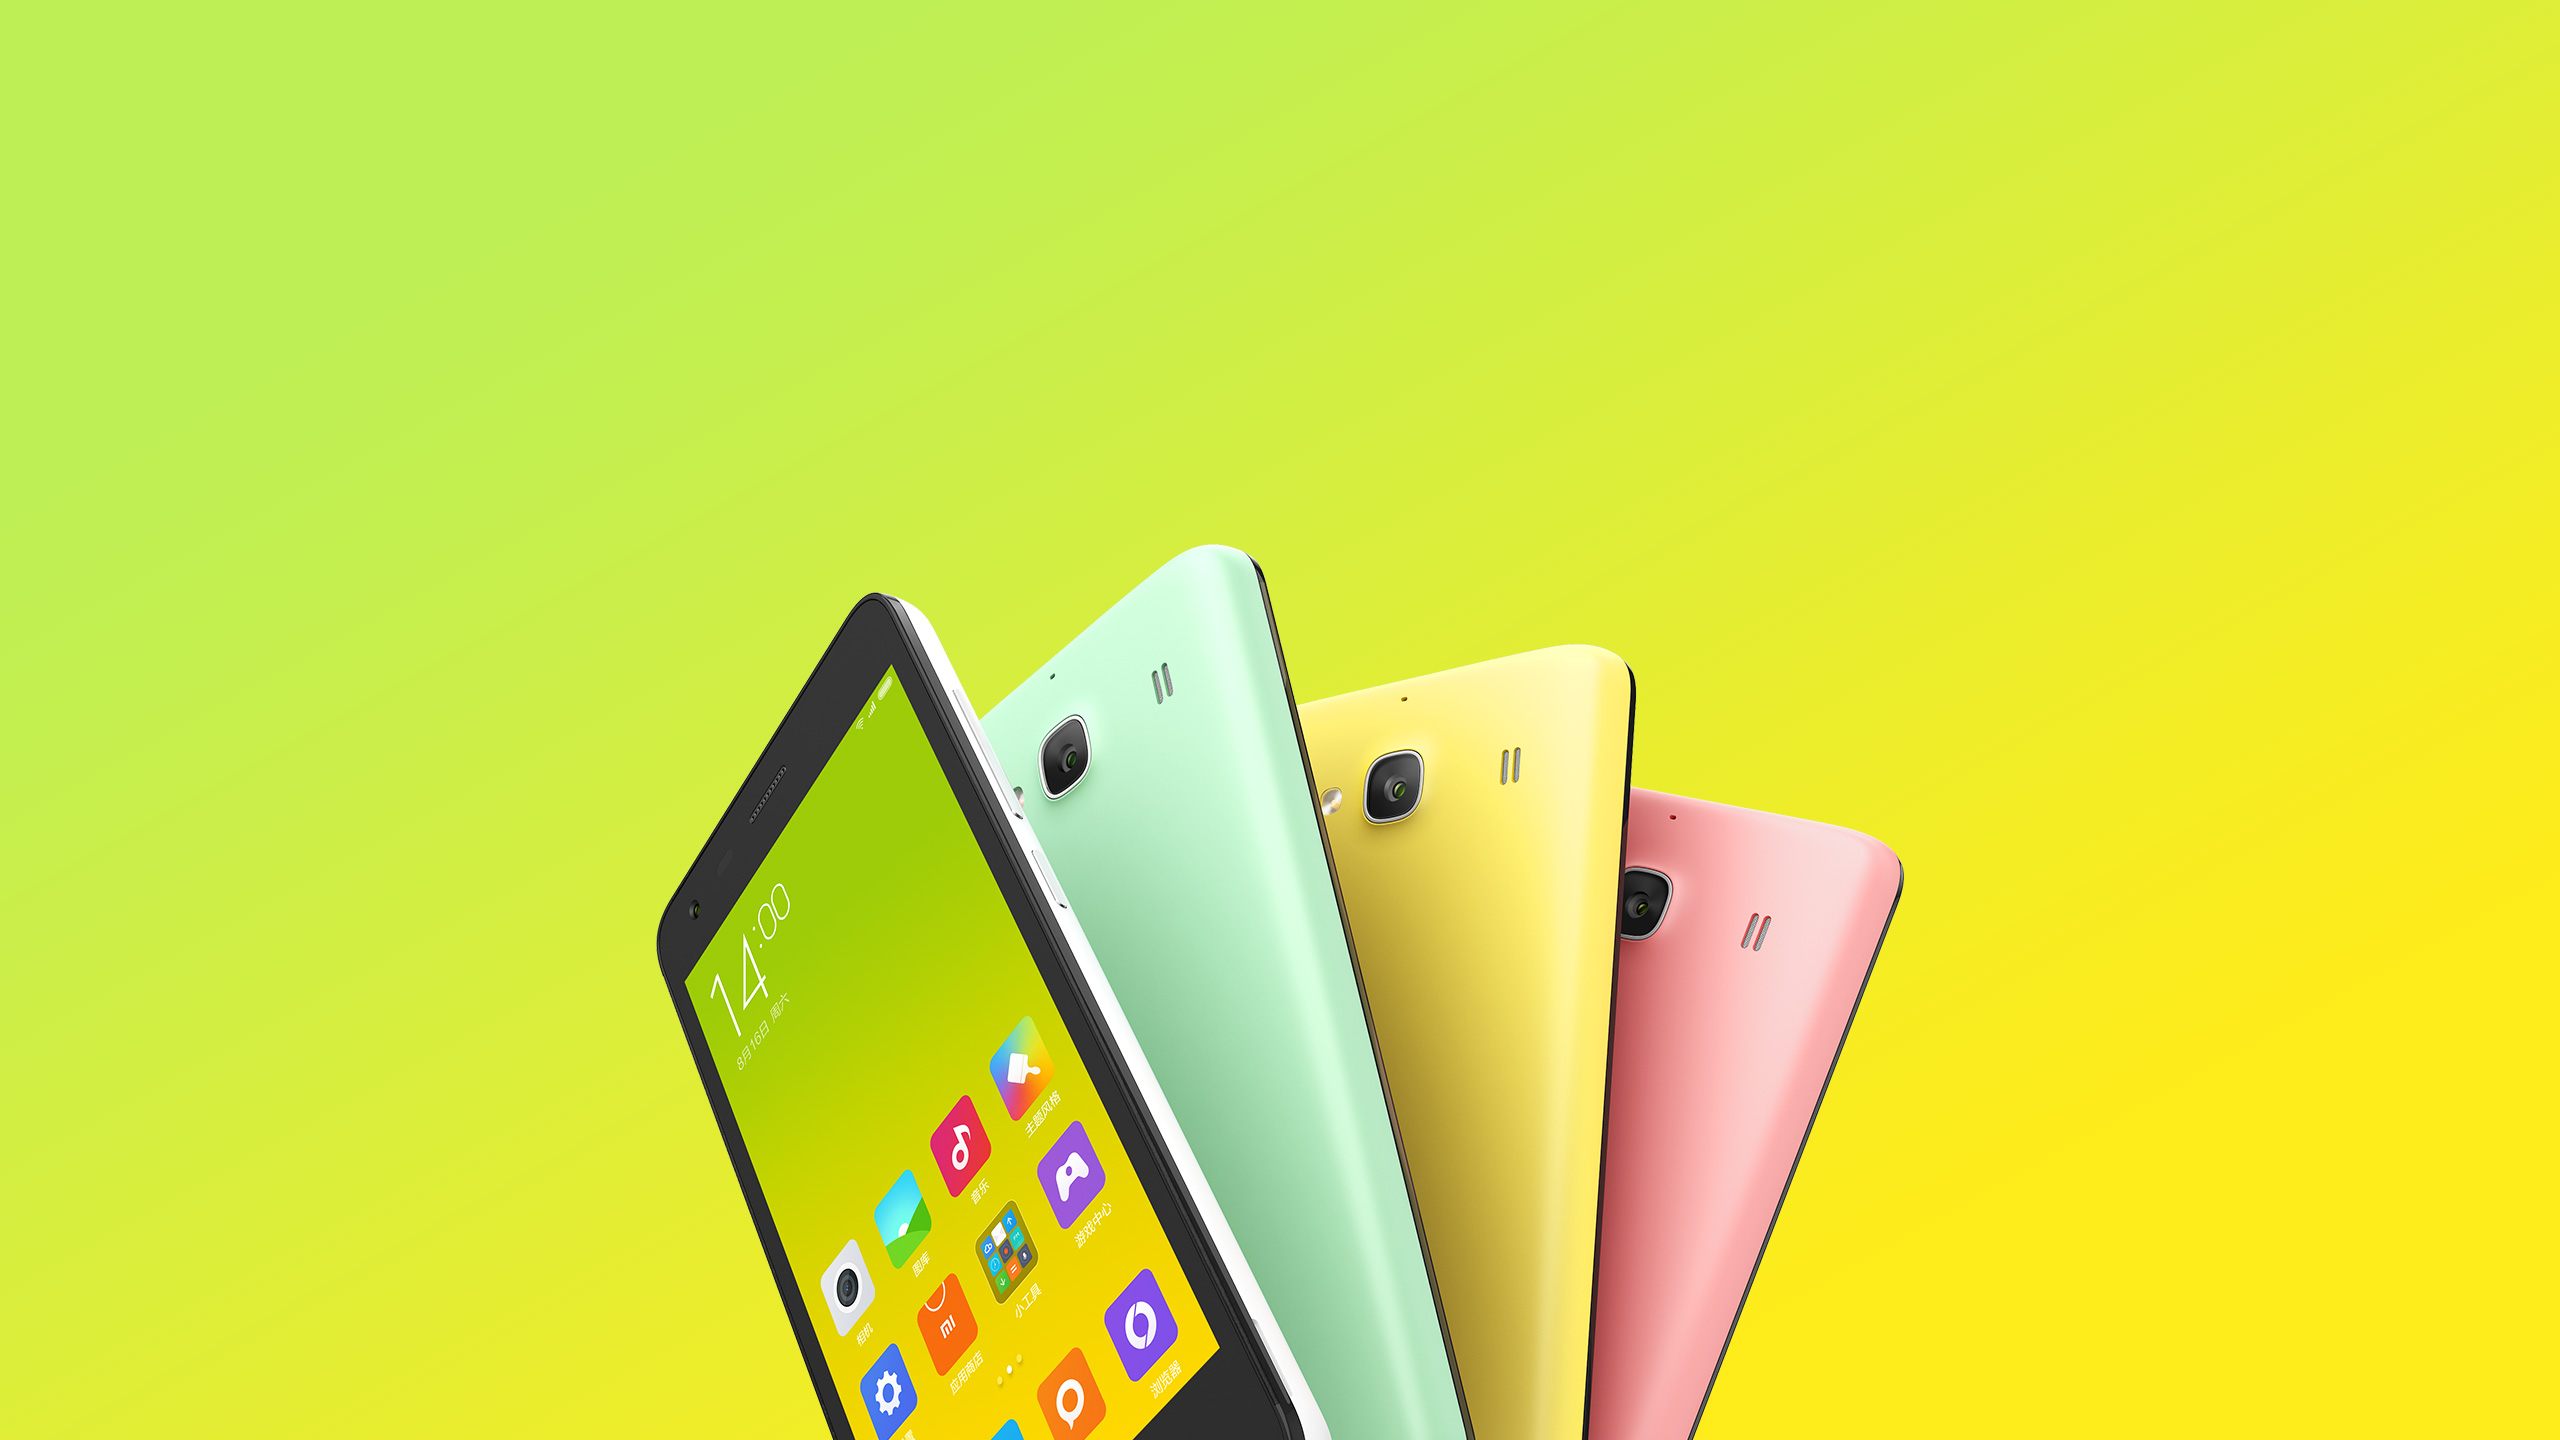 Xiaomi Redmi 2 With 4g Lte Support Launched In India For Rs 6999 110